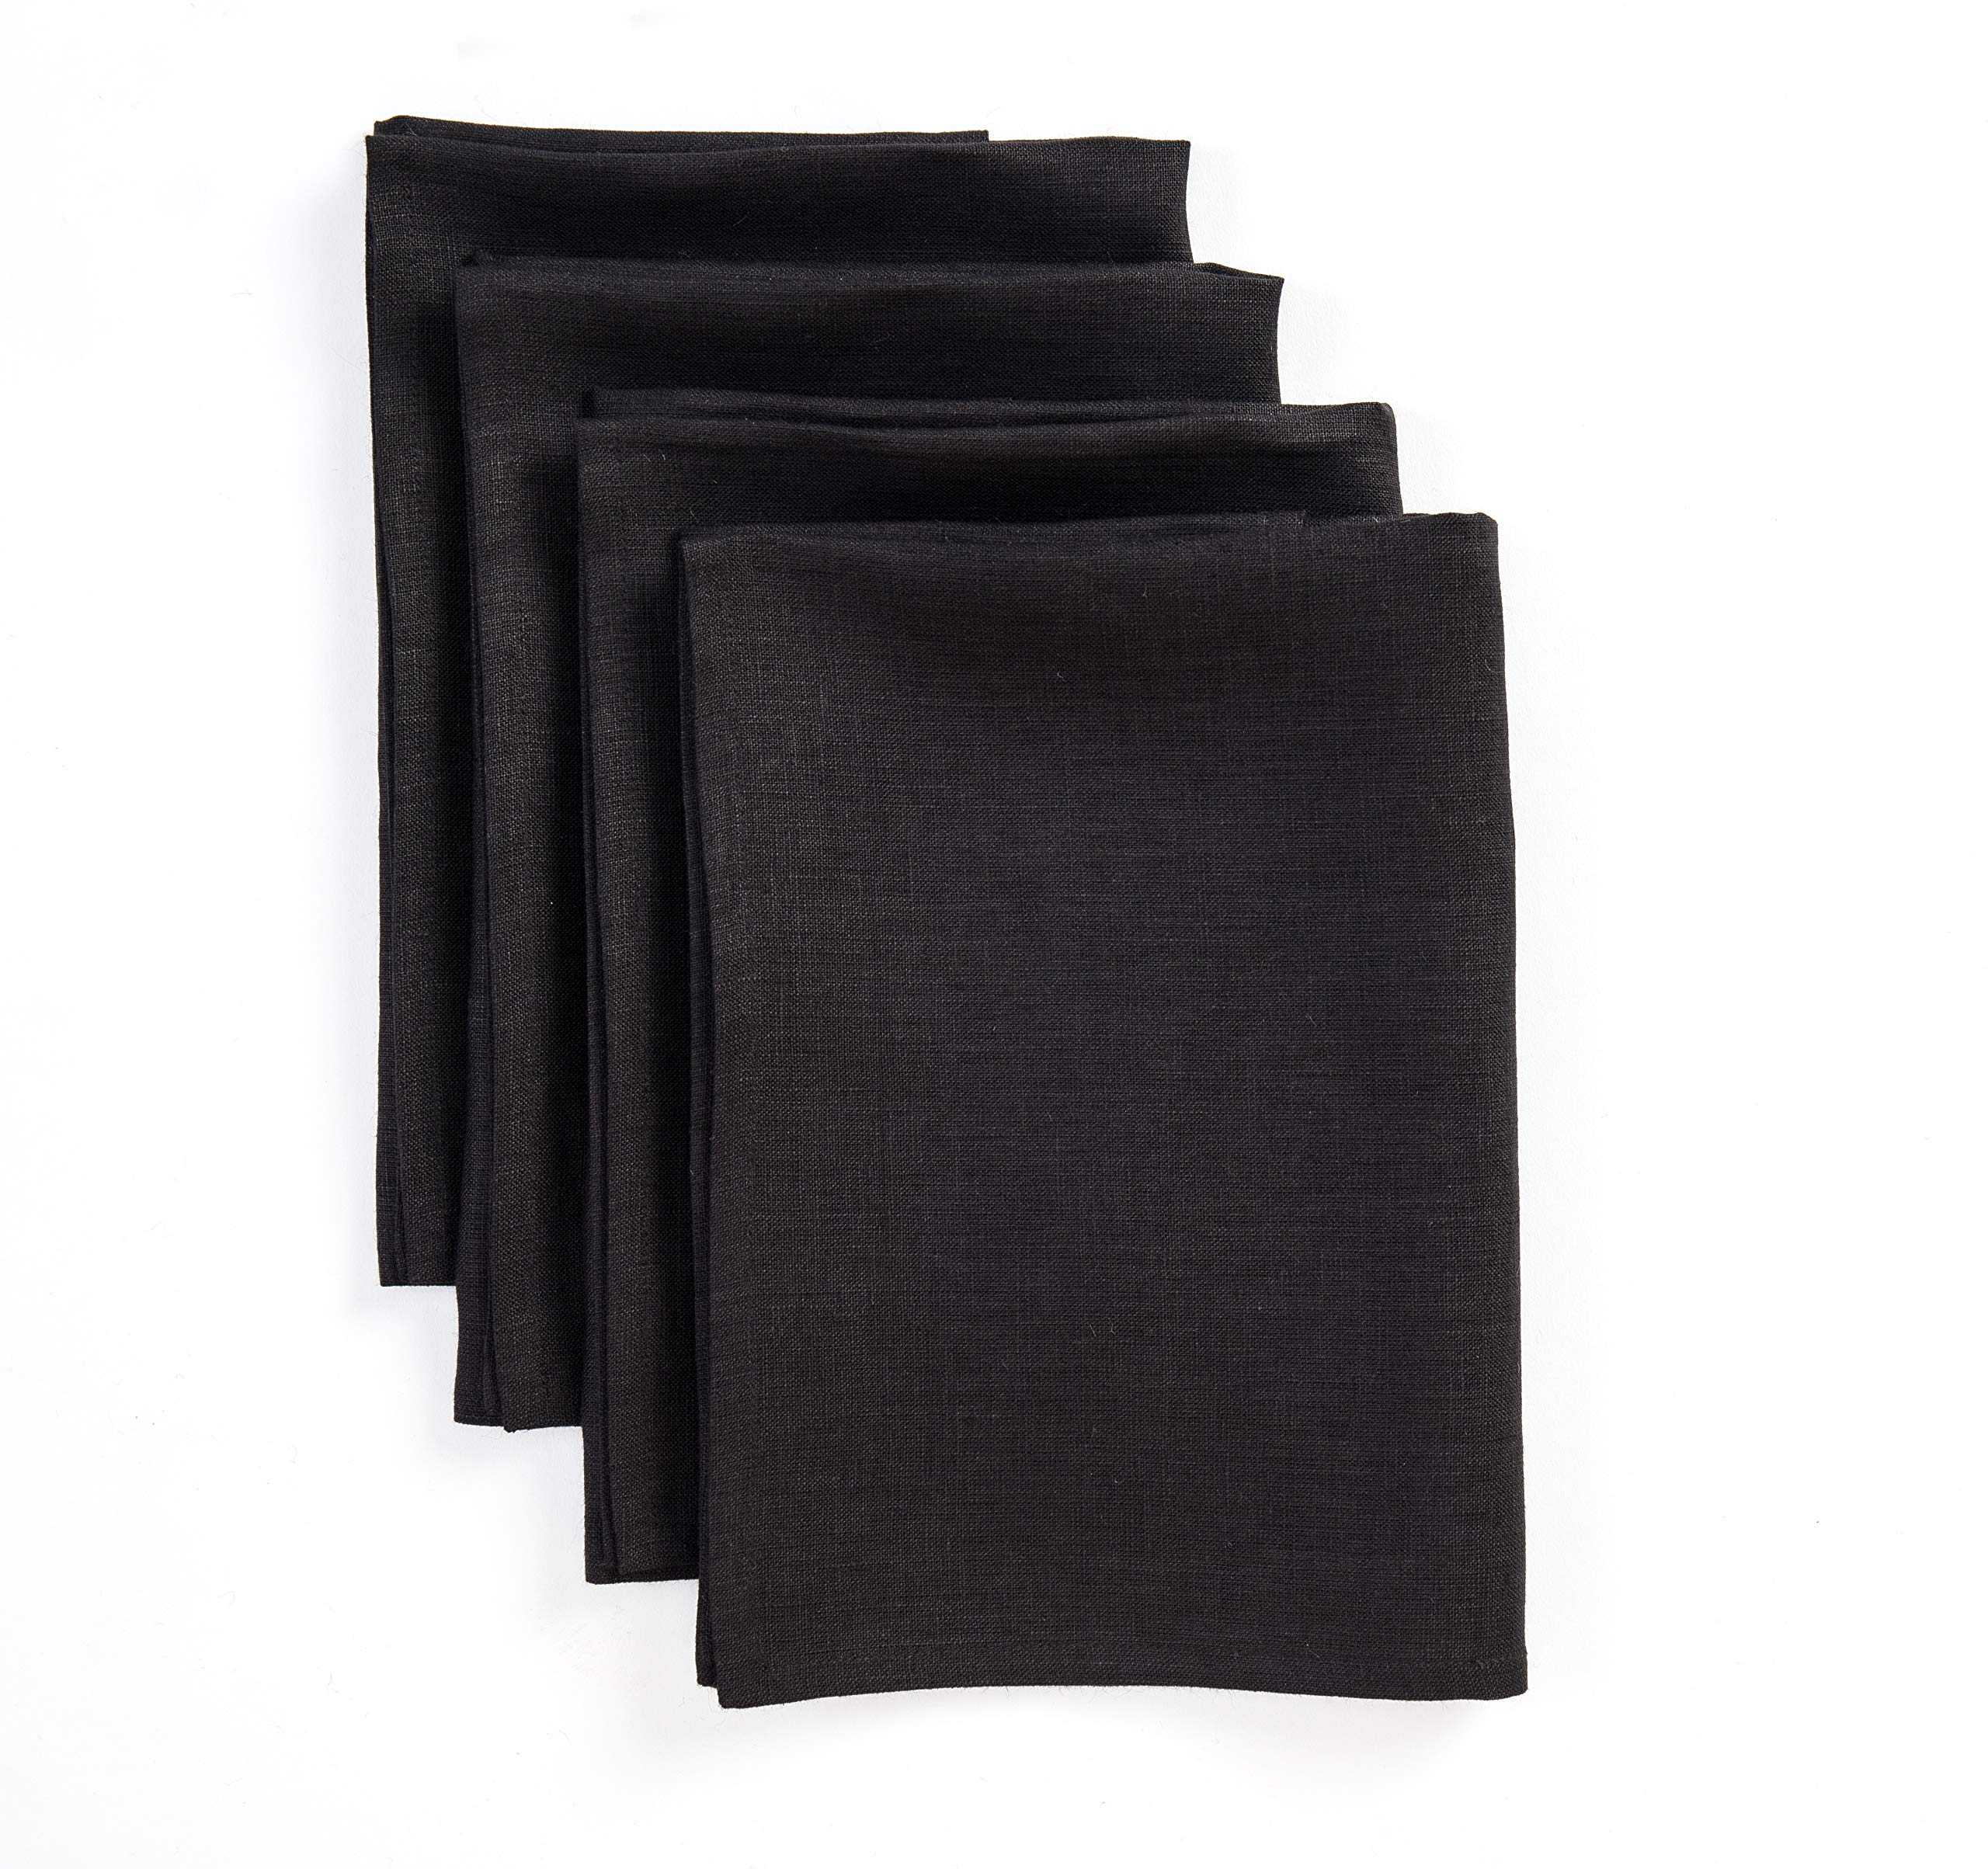 Solino Home Linen Dinner Napkins - 20 x 20 Inch Black, 4 Pack Linen Napkins, Athena - 100% European Flax, Soft & Handcrafted with Mitered Corners